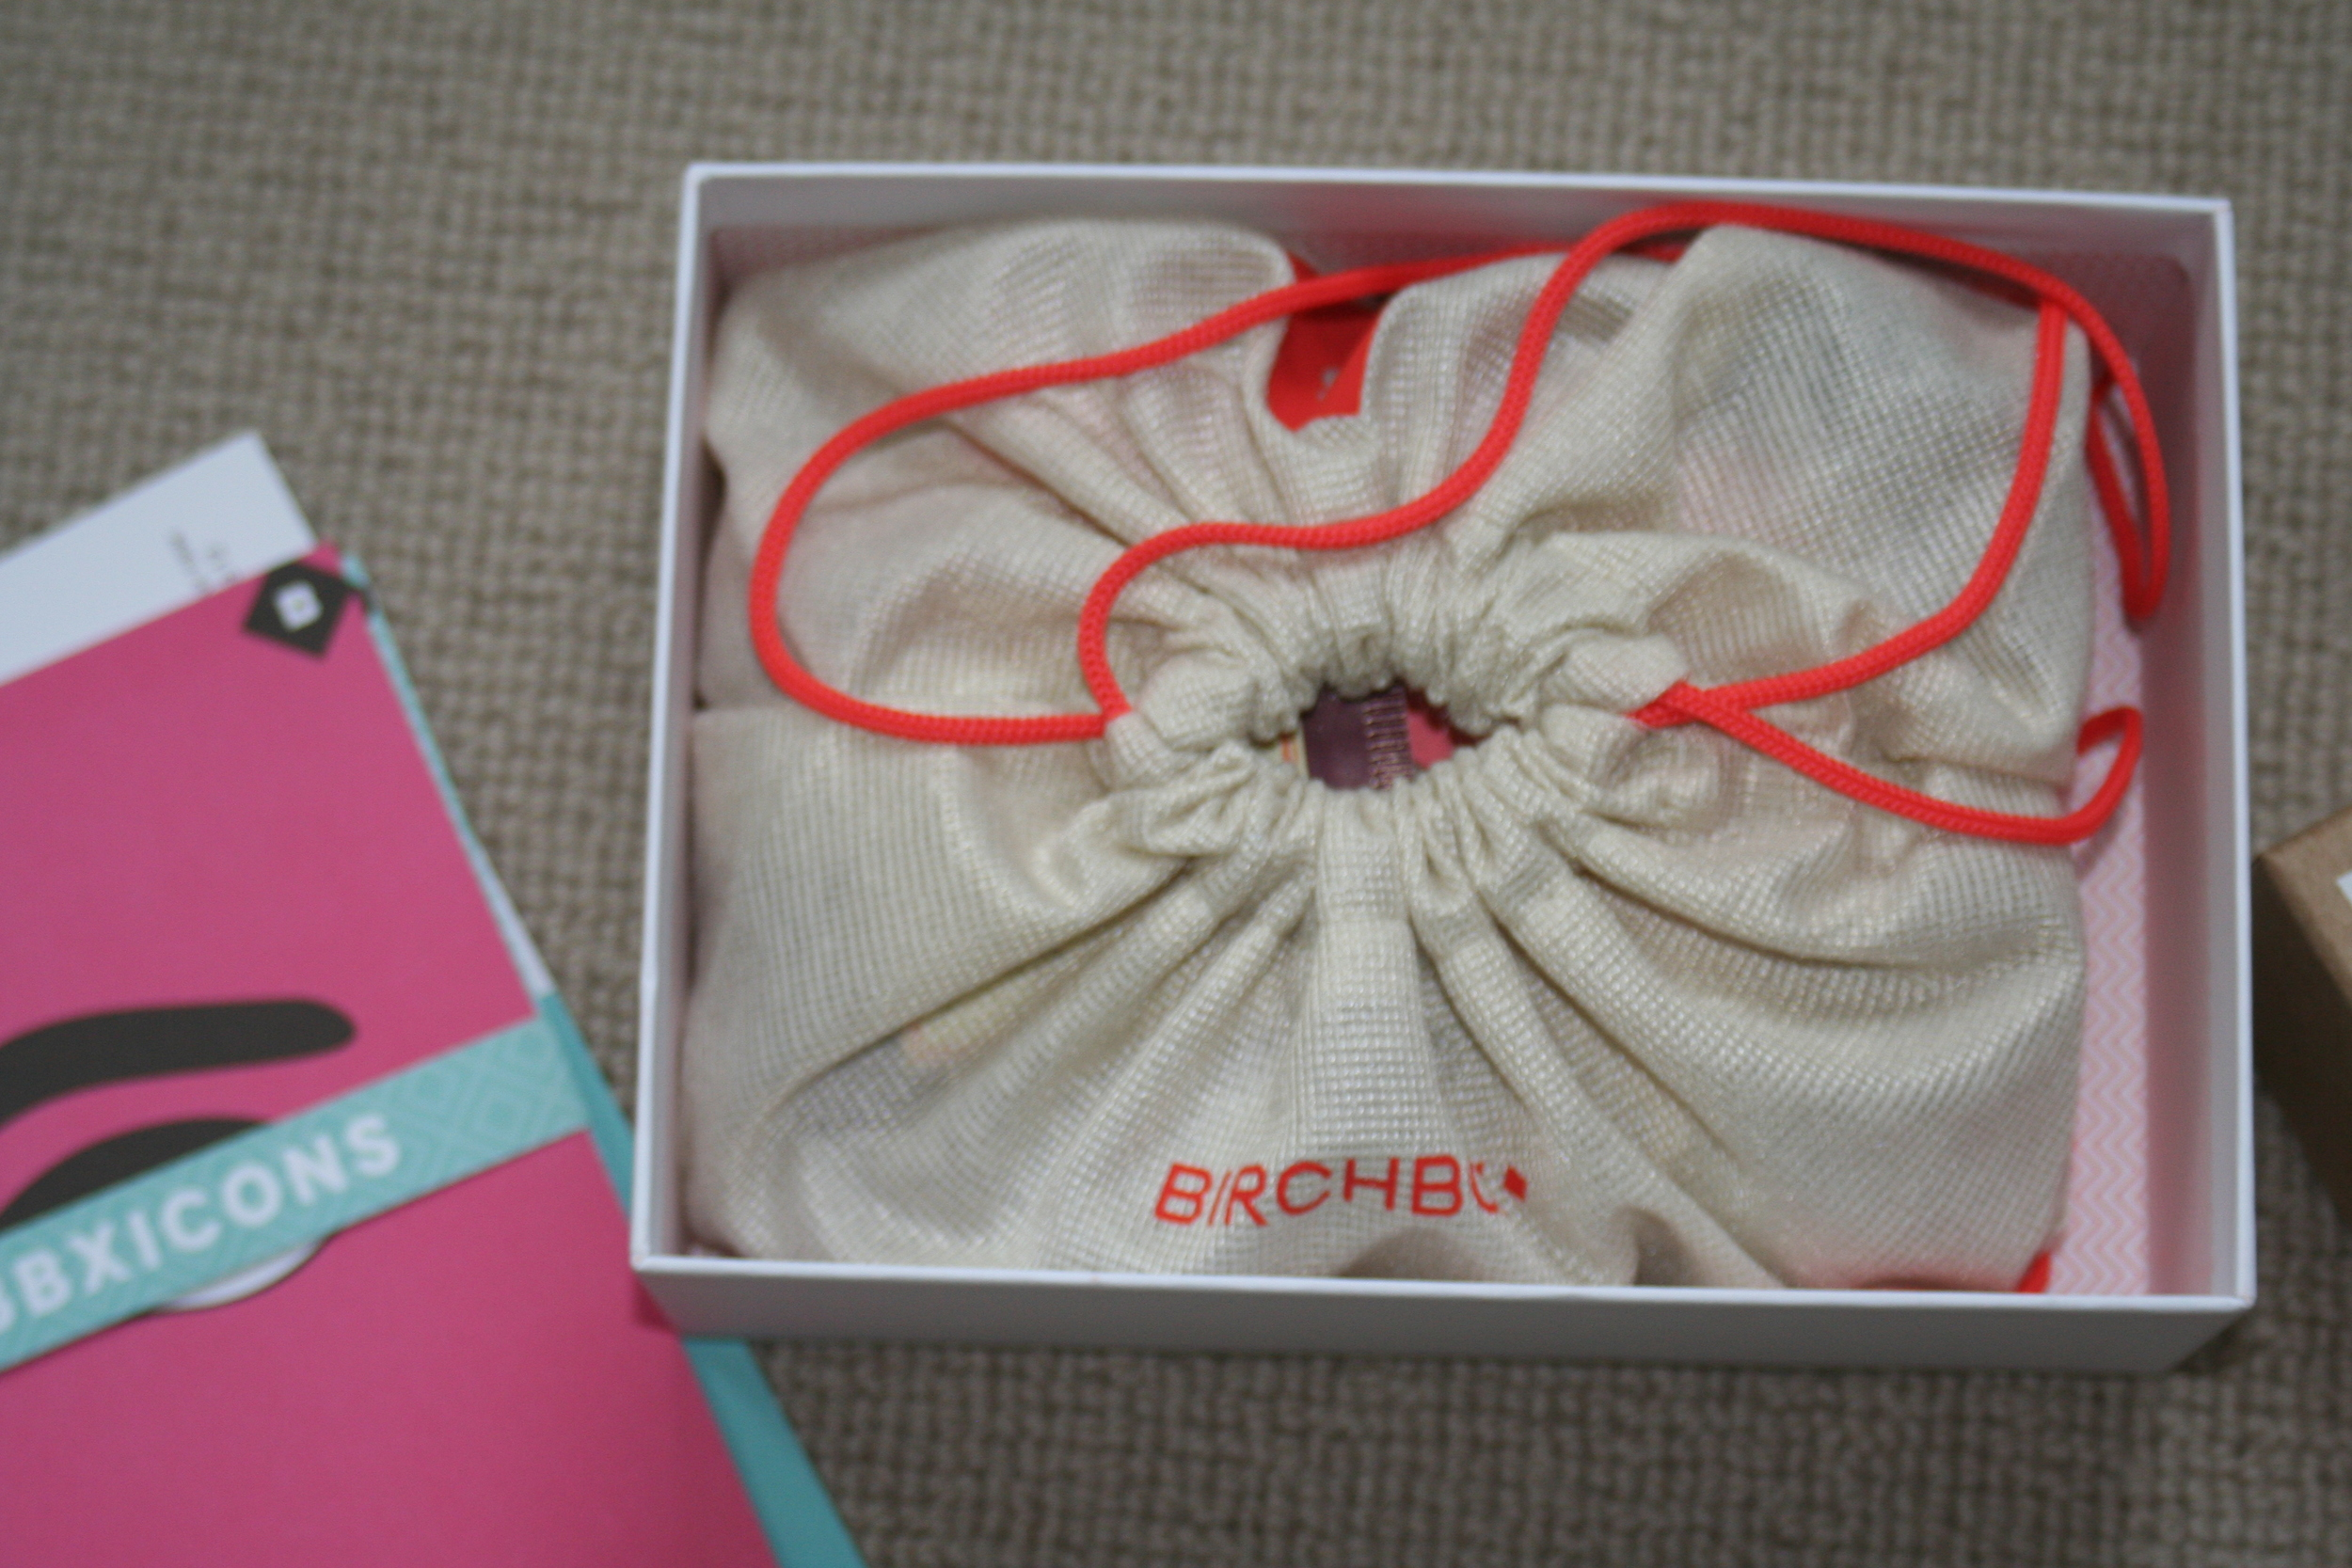 Birchboxes have an inner draw-string bag which holds the goodies